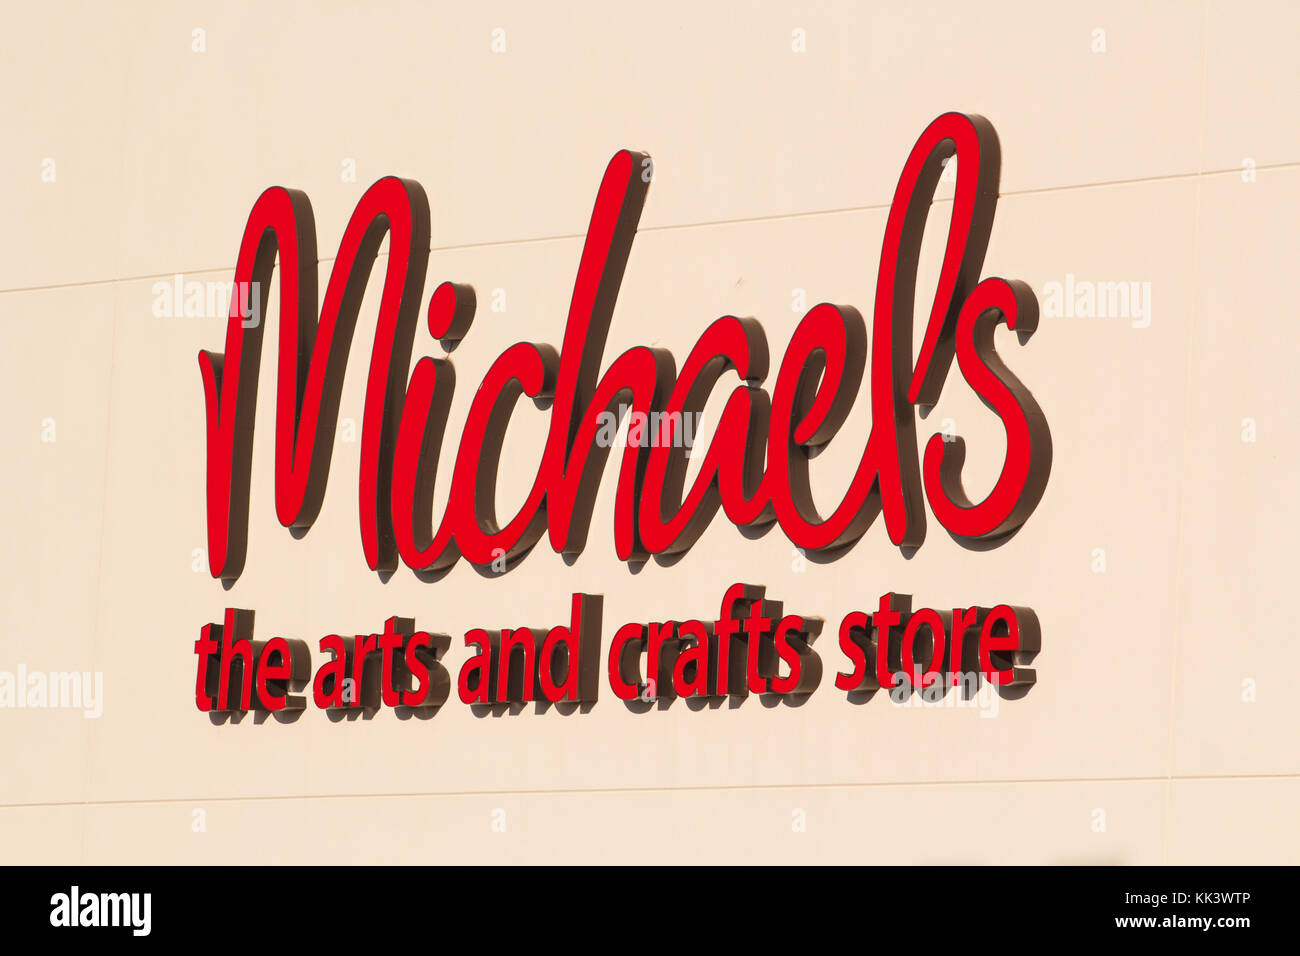 Variety store chain stock photos variety store chain for Michaels arts and crafts queens